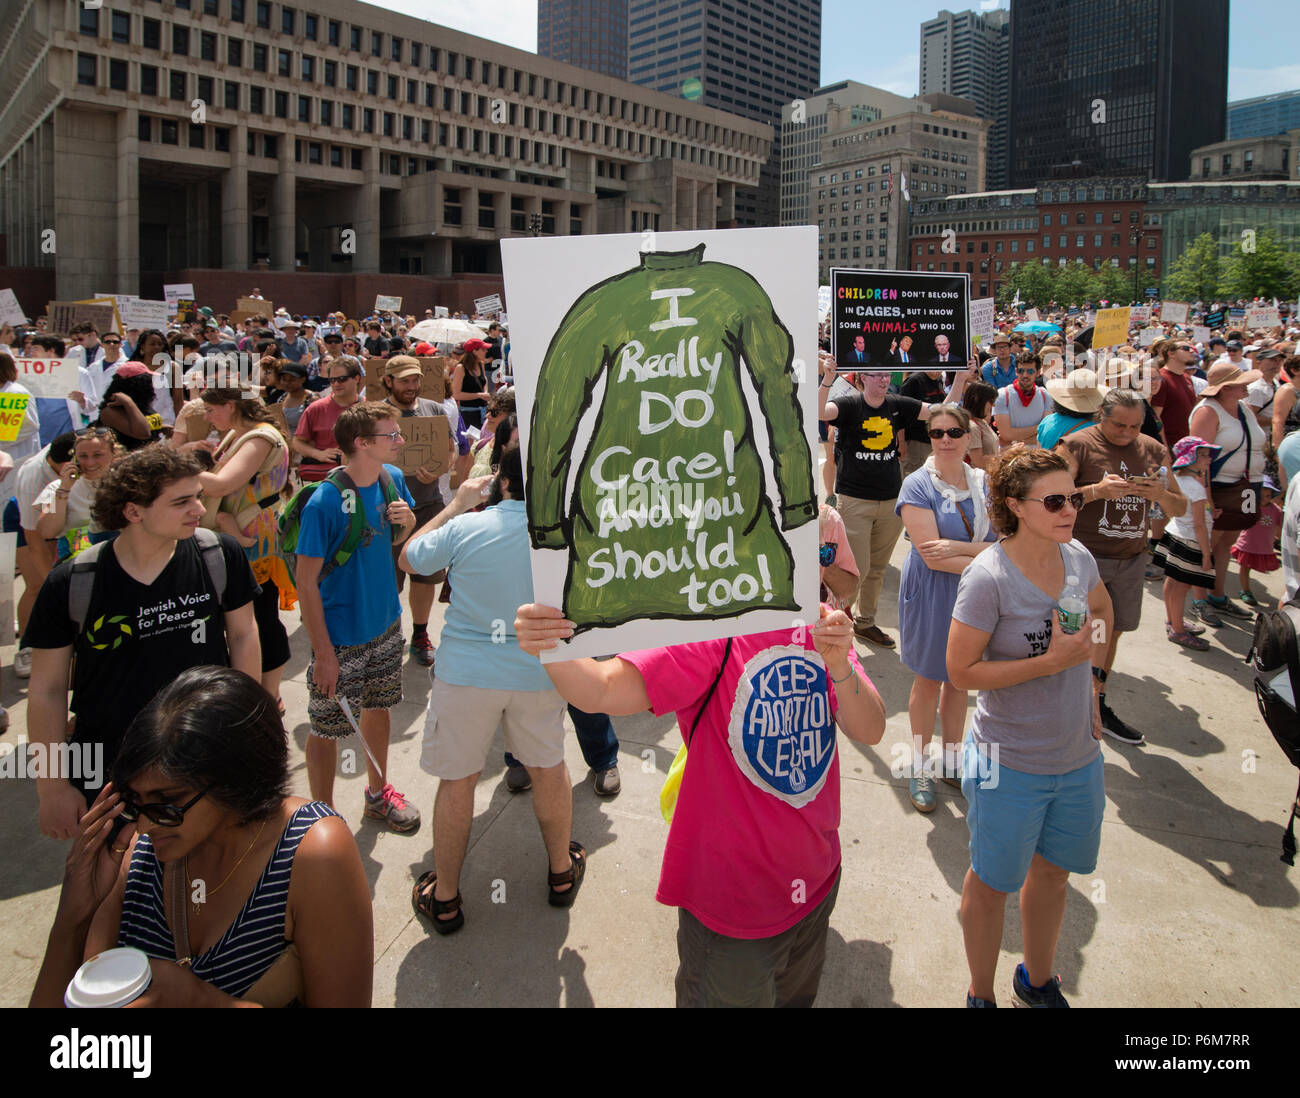 Boston, Massachusetts, USA. 30th June, 2018.  U.S. Demonstrator holding a sign mocking the Jacket that First Lady, Melania Trump wore before visiting a Texas detention shelter. Thousands Gathered in City Hall Plaza in Boston, MA during the Rally against Family Separation by the current United States administration. Rallies against U.S. President Donald Trump's policy of the detention of immigrants and immigrant families separated by U.S. customs and border agents (I.C.E.) took place in more than 750 US cities on June 30th. Credit: Chuck Nacke/Alamy Live News - Stock Image